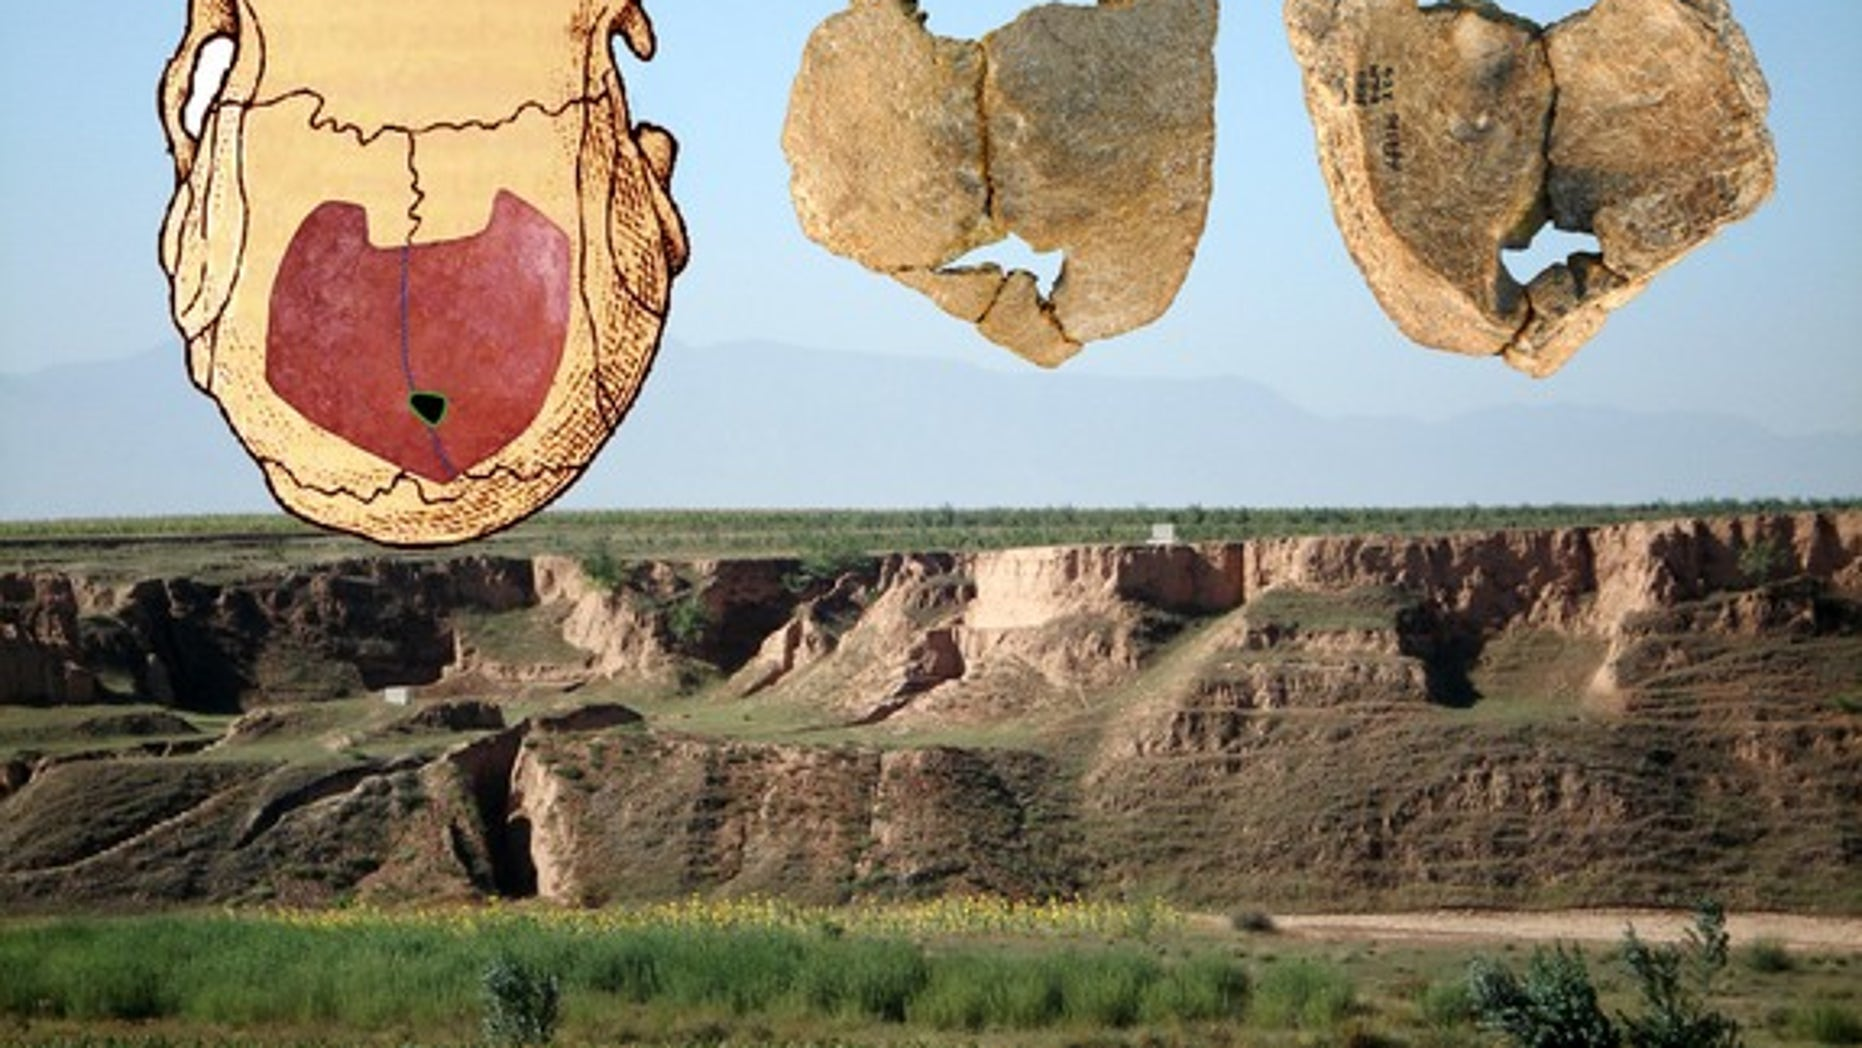 Human skull fossils (inset) found at the Xujiayao site in China (background) show signs of a genetic disorder that hints at inbreeding.